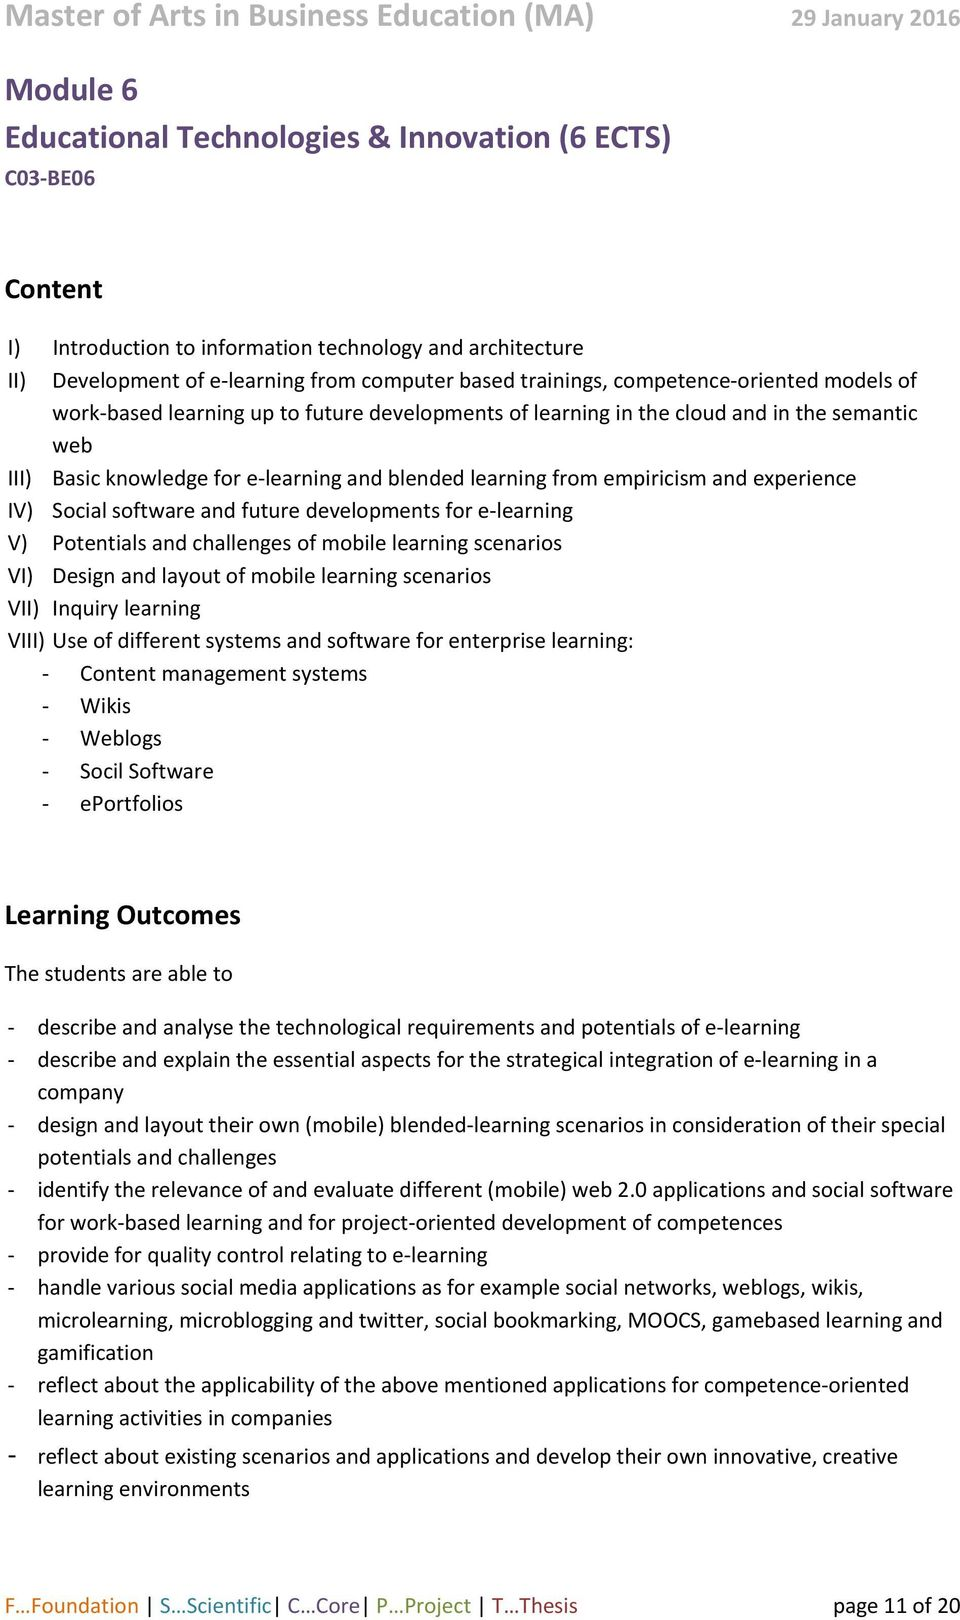 experience IV) Social software and future developments for e learning V) Potentials and challenges of mobile learning scenarios VI) Design and layout of mobile learning scenarios VII) Inquiry